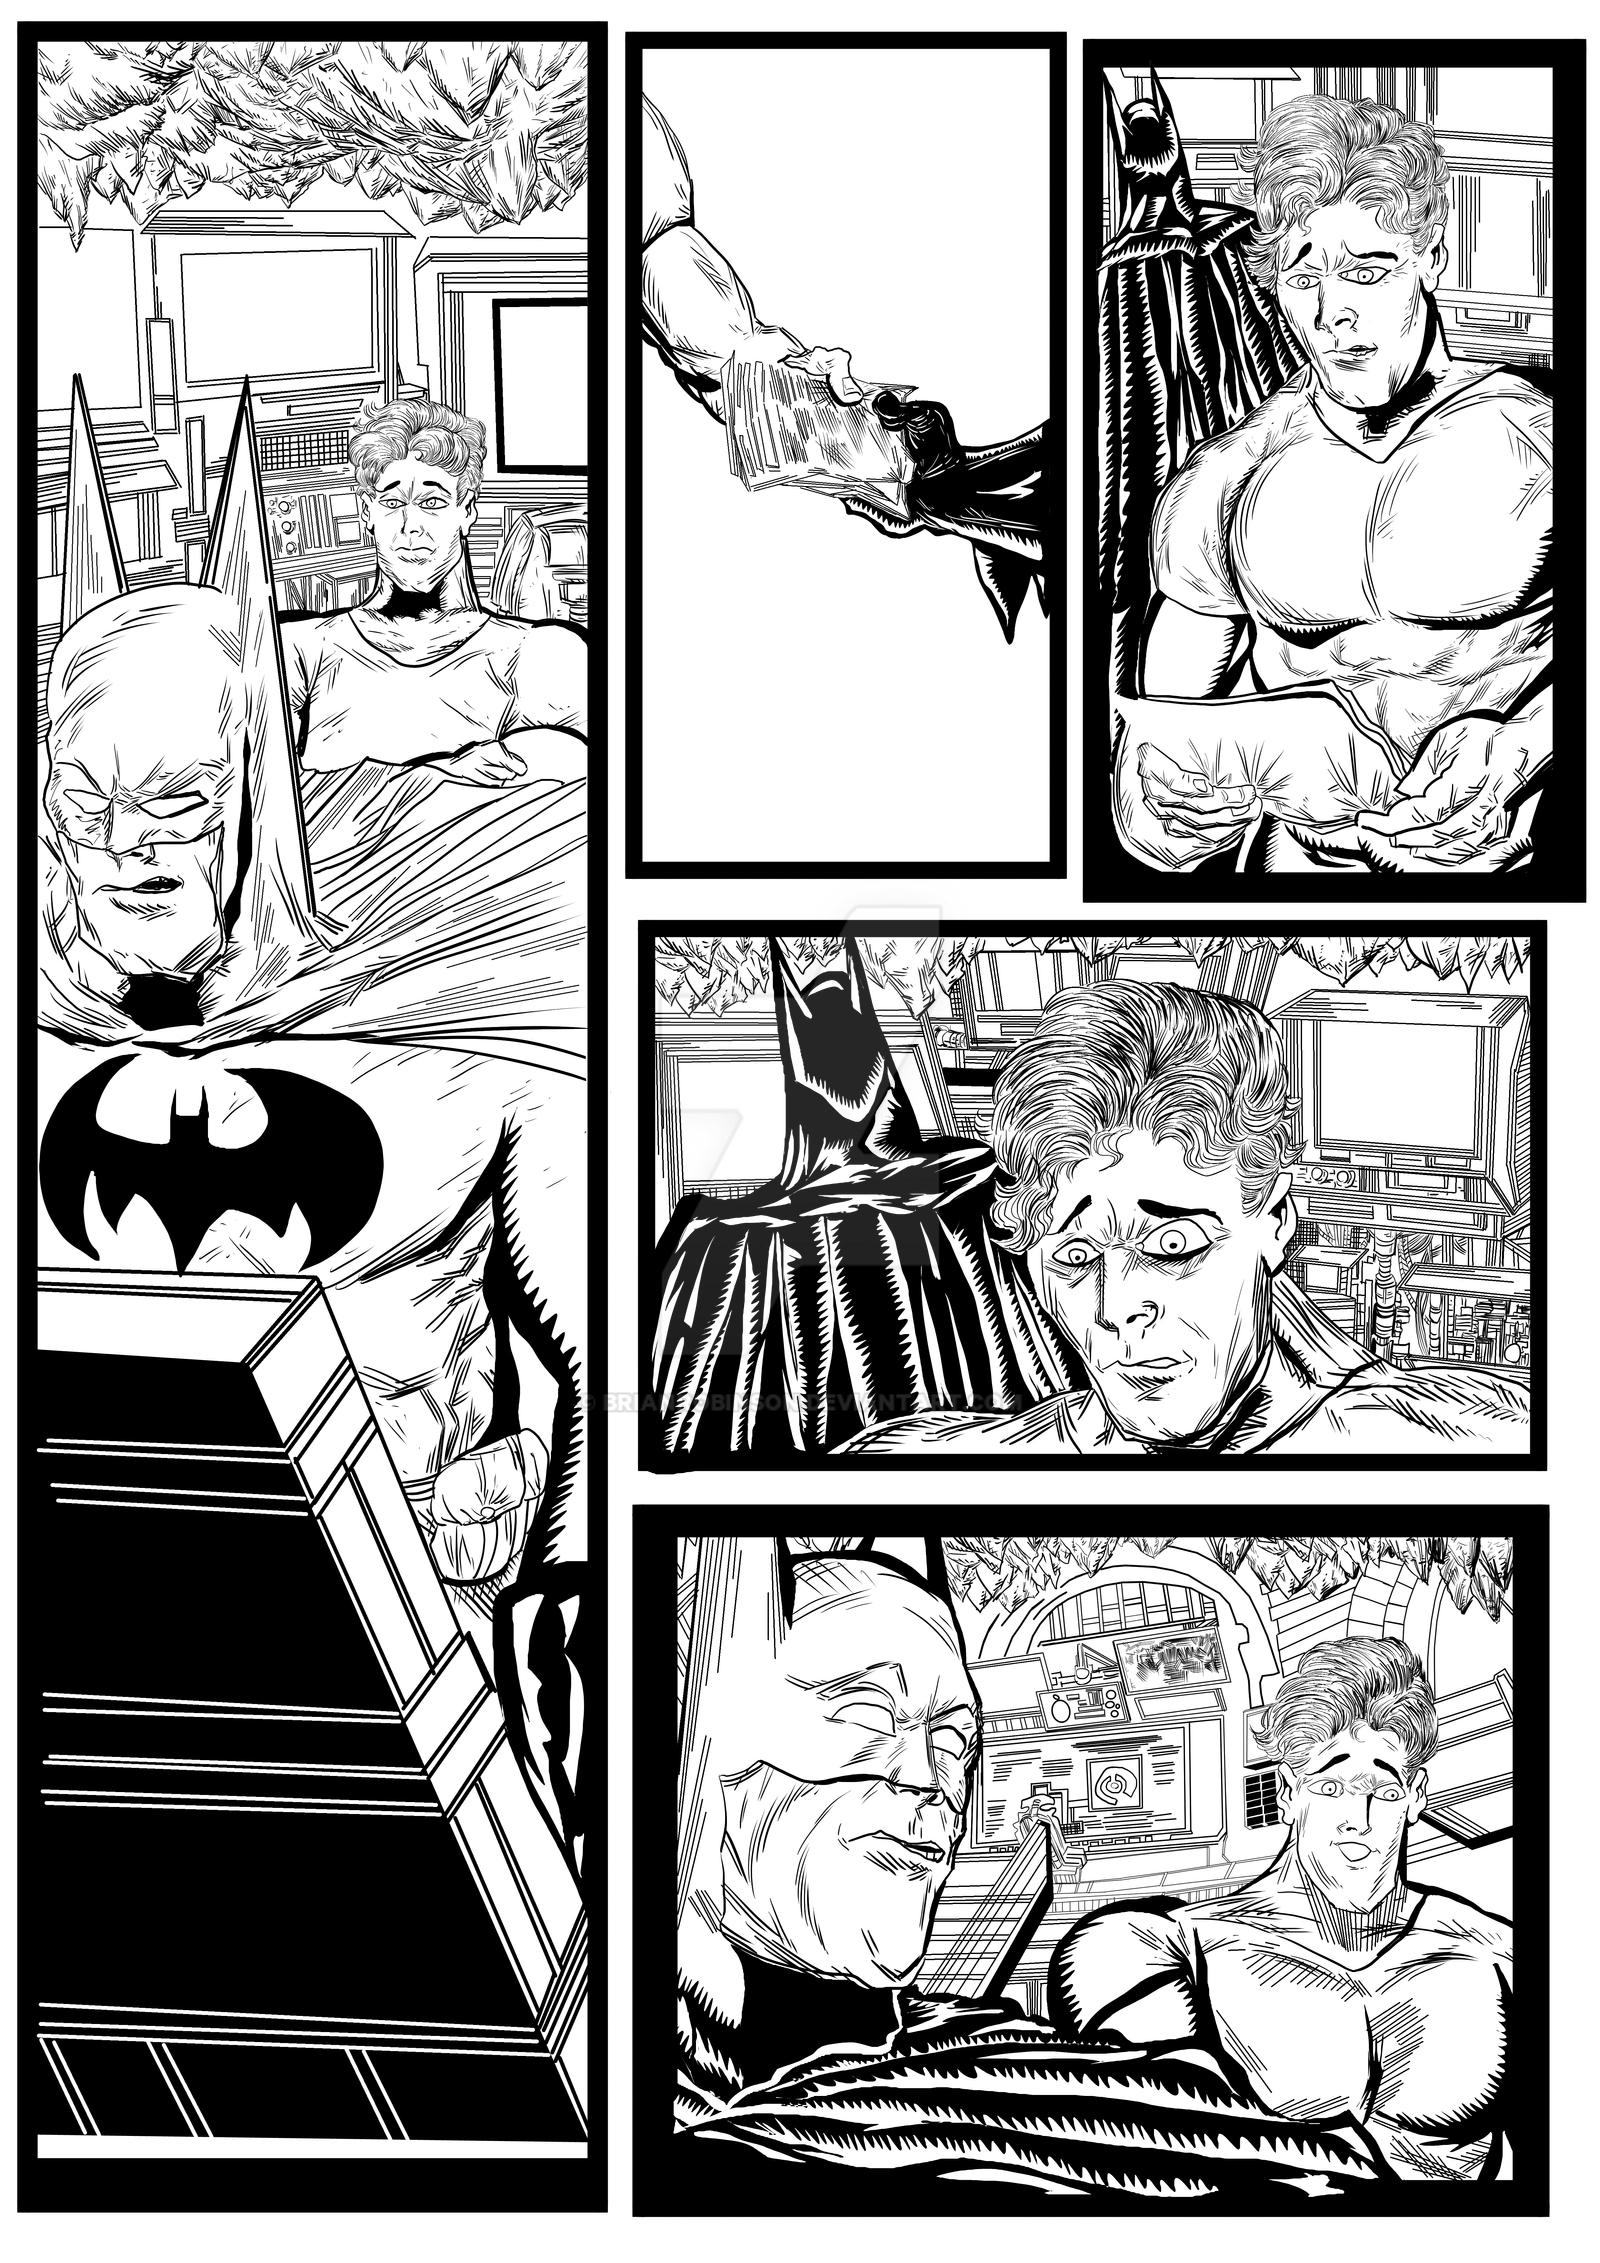 Batman and Robin sequential artwork page 3-2017